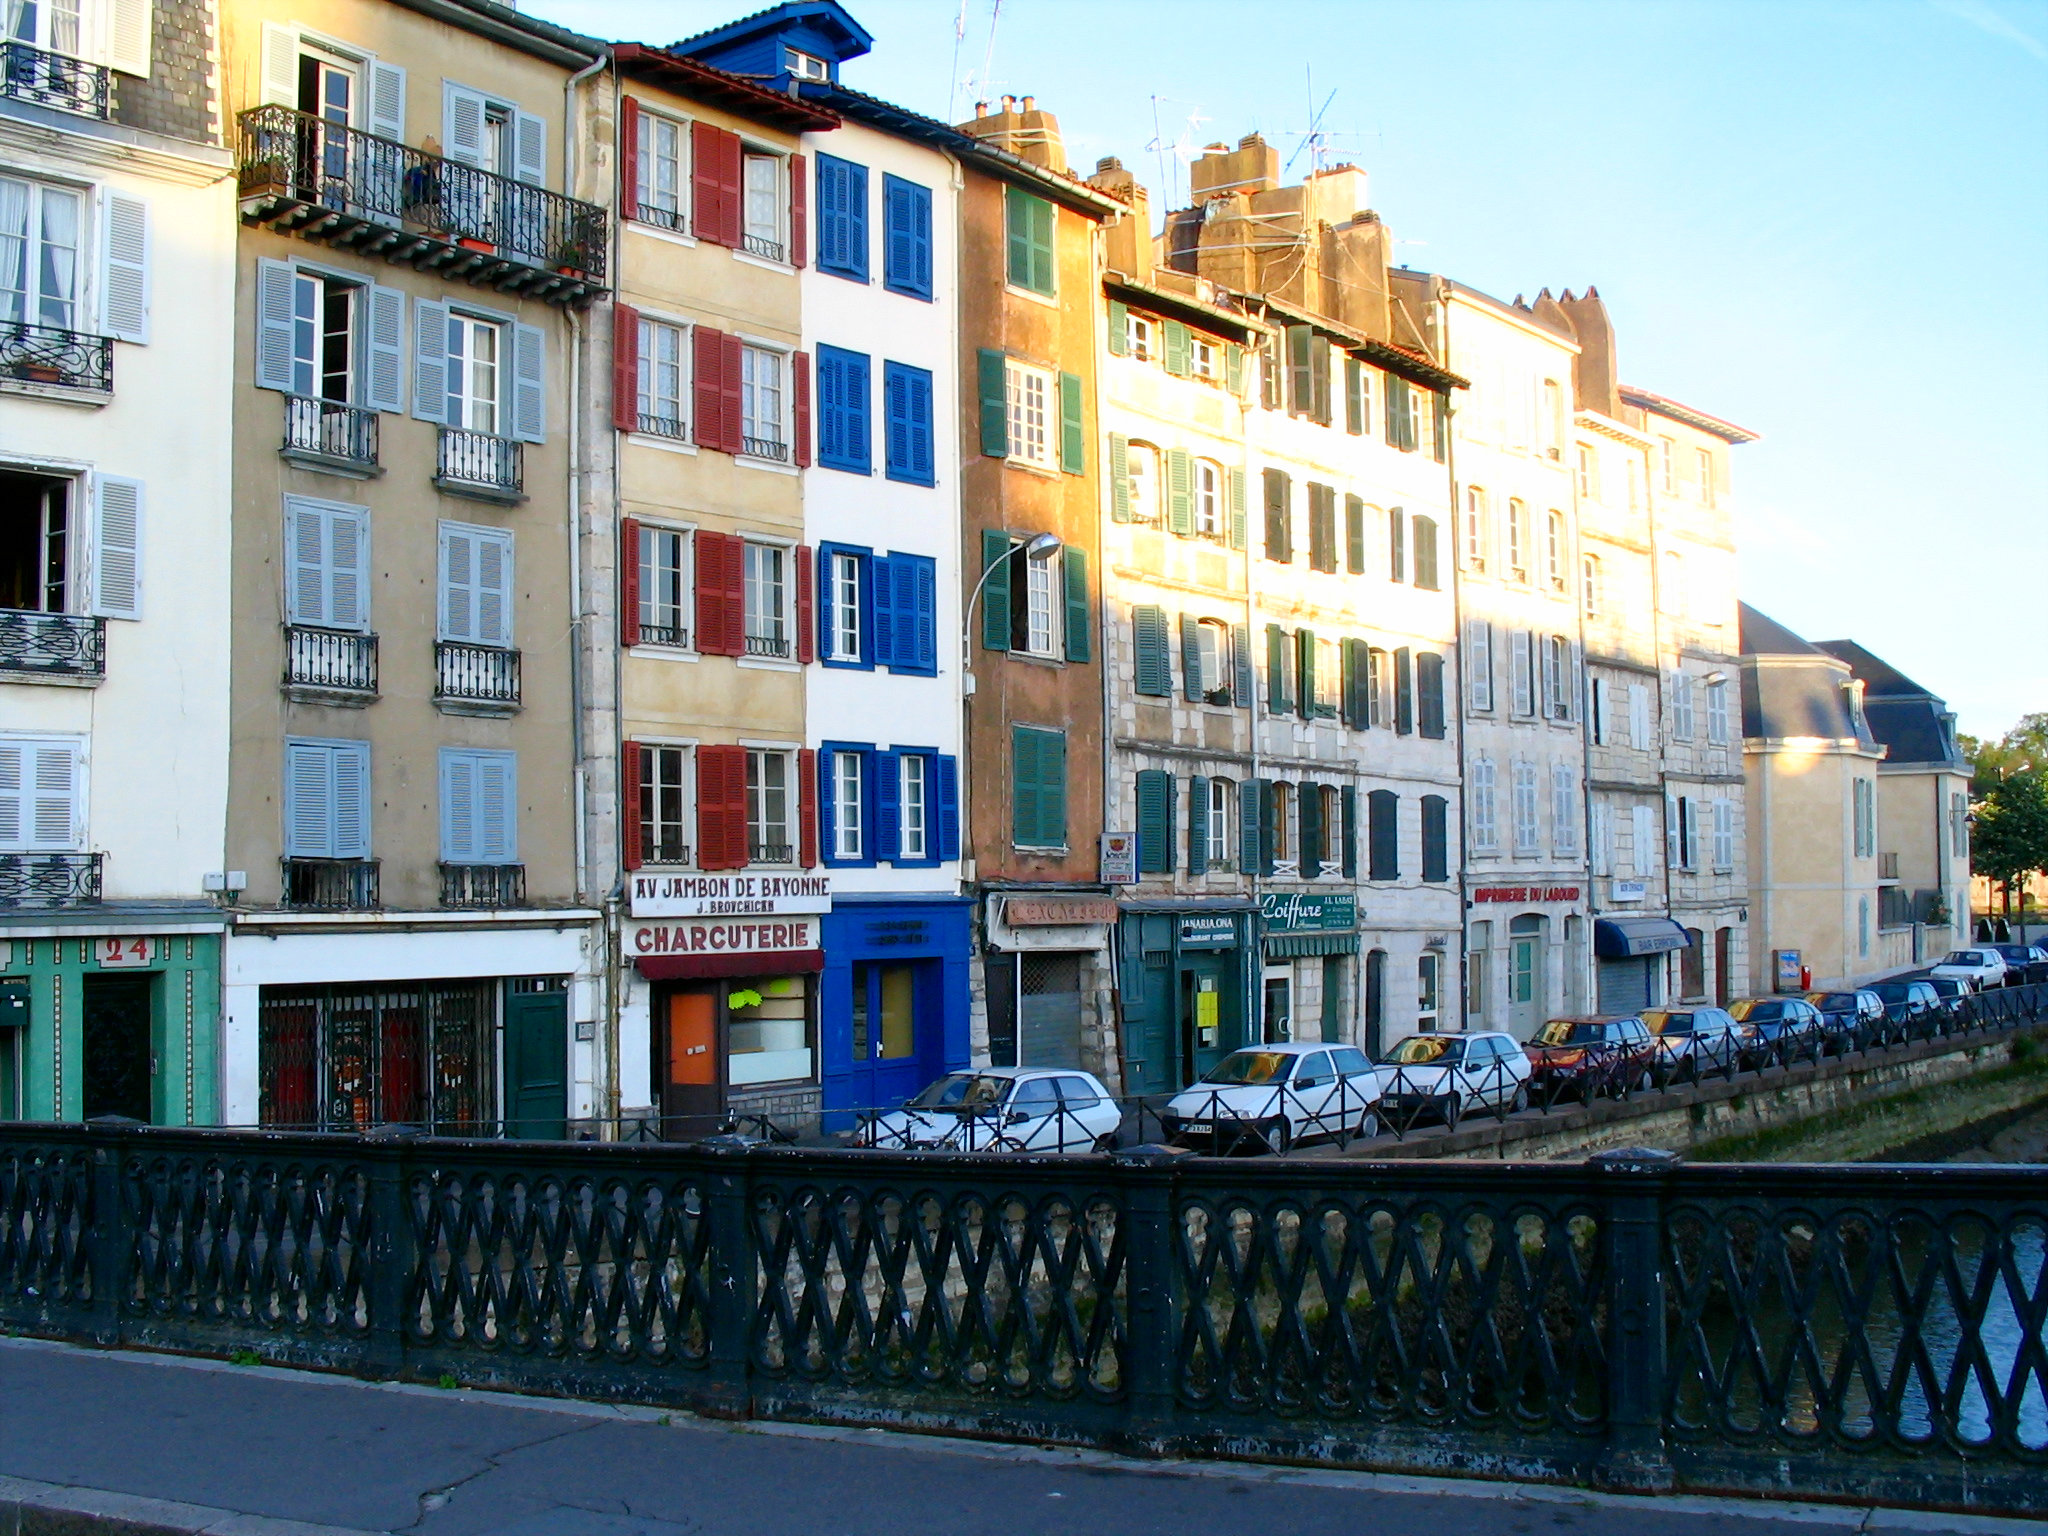 http://upload.wikimedia.org/wikipedia/commons/7/73/Bayonne_-_Houses_view.jpg